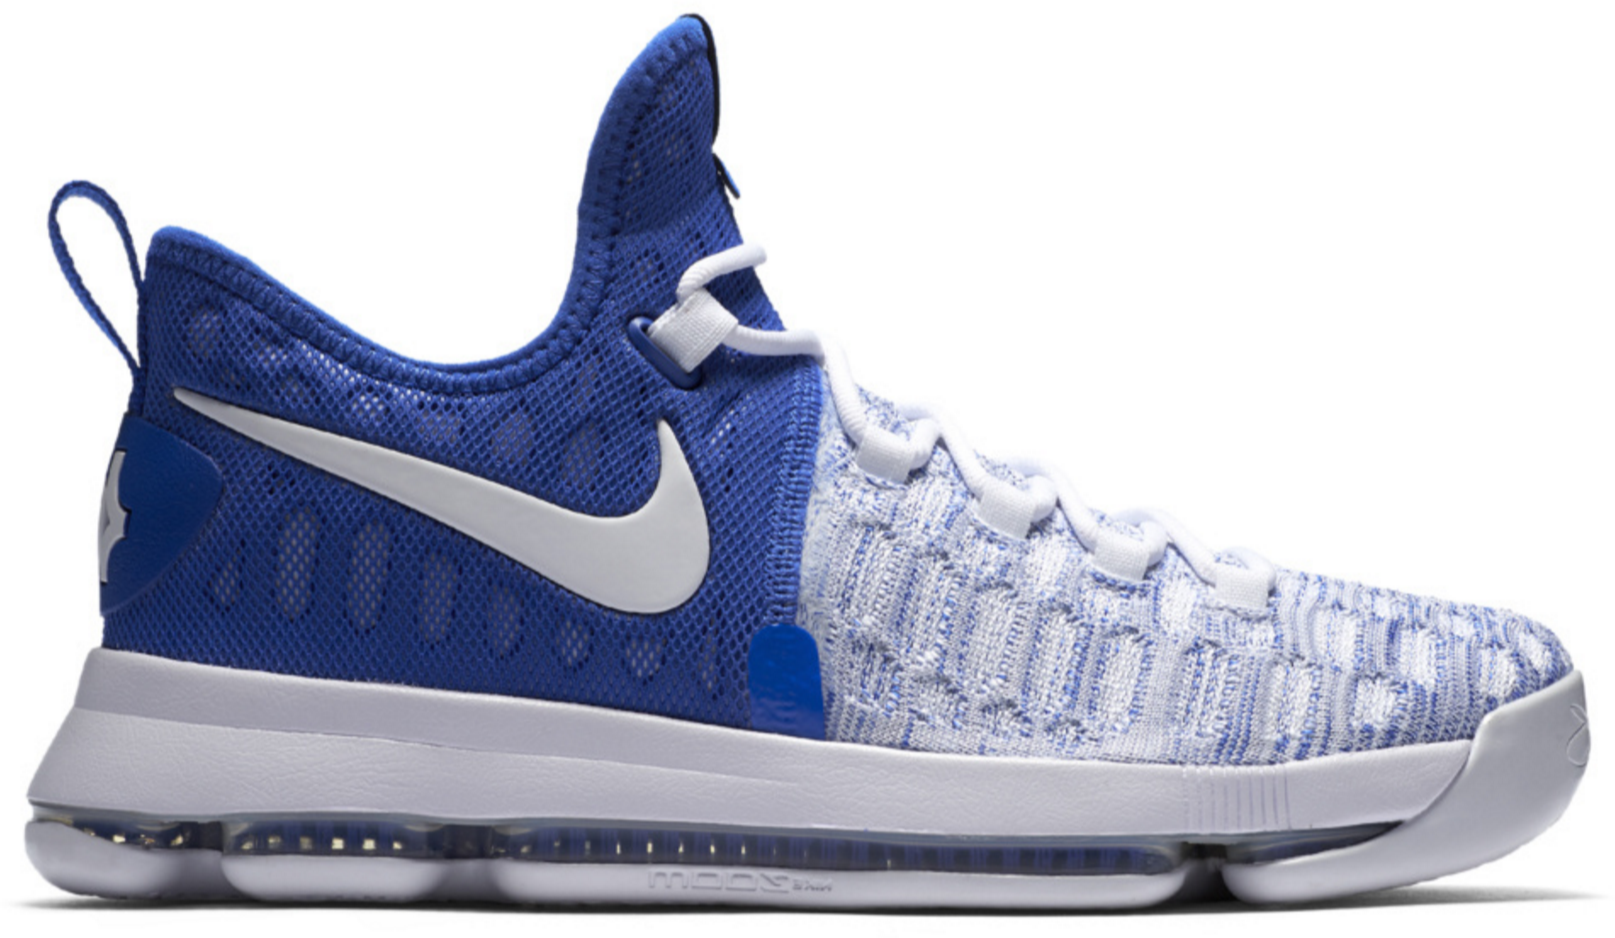 KD 9 Home